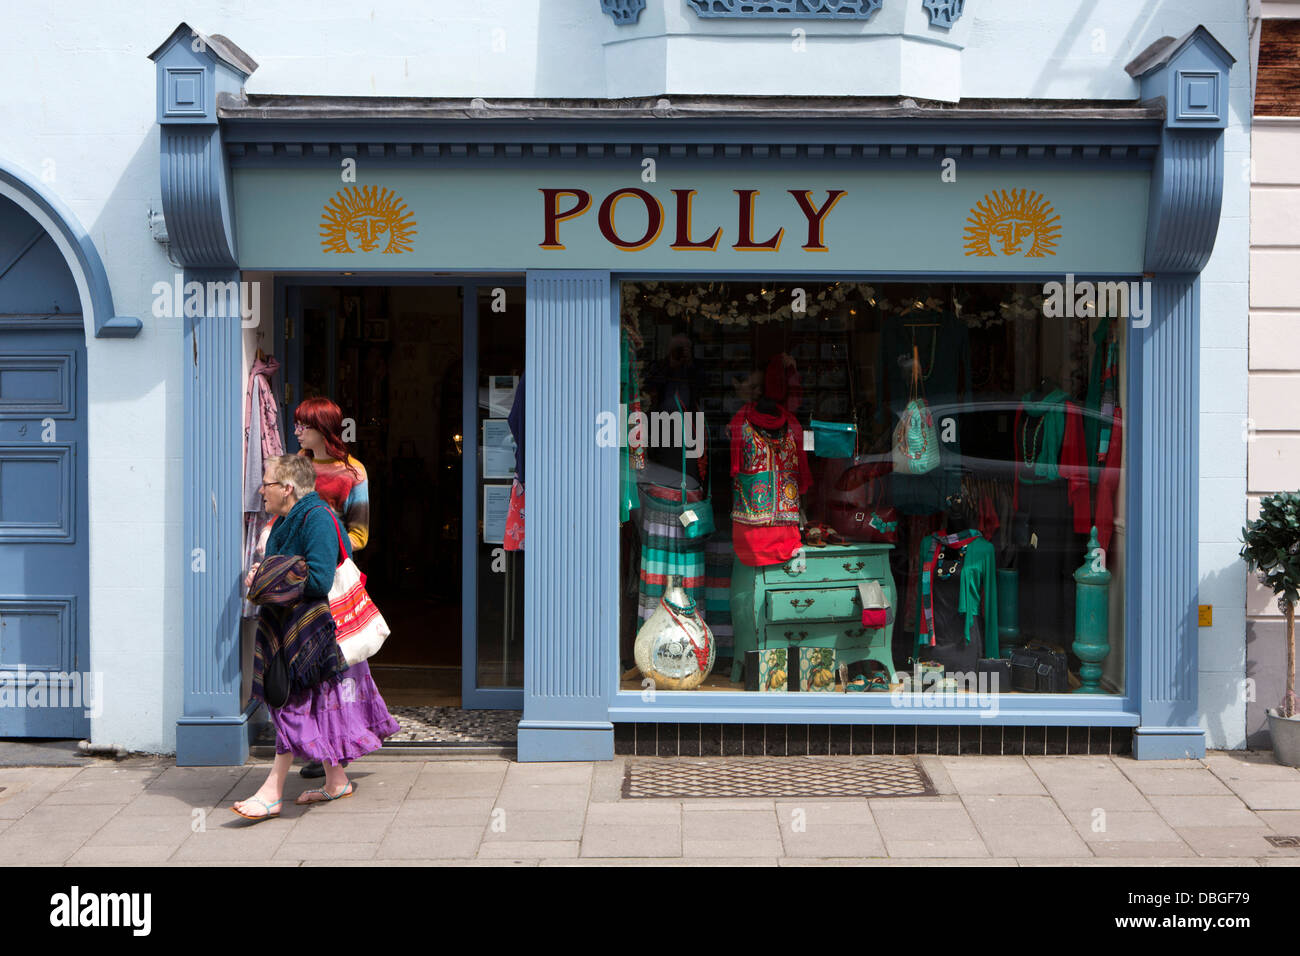 UK, Wales, Ceredigion, Aberystwyth, Town Centre, Chalybeate Street, Polly clothes shop - Stock Image